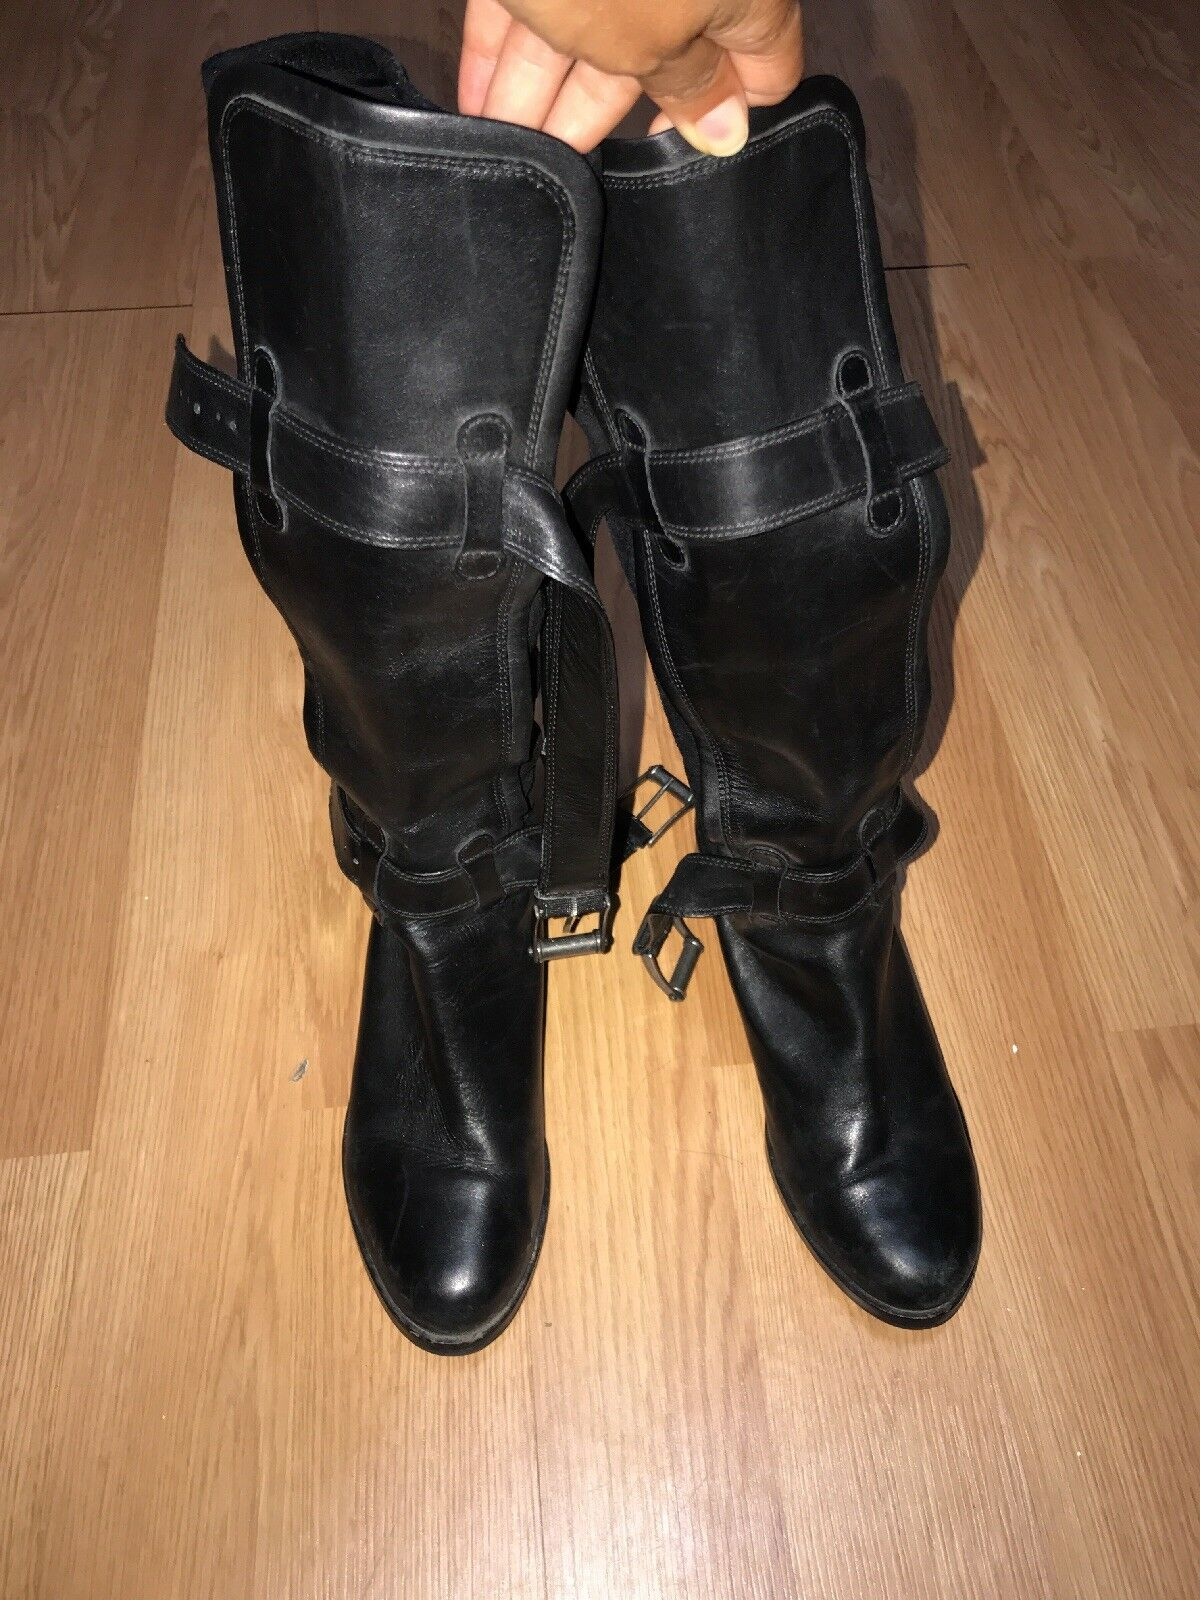 Cole Haan Womens Tall Black Leather Biker Riding Boots Sz 8.5 Buckle Winter Cute